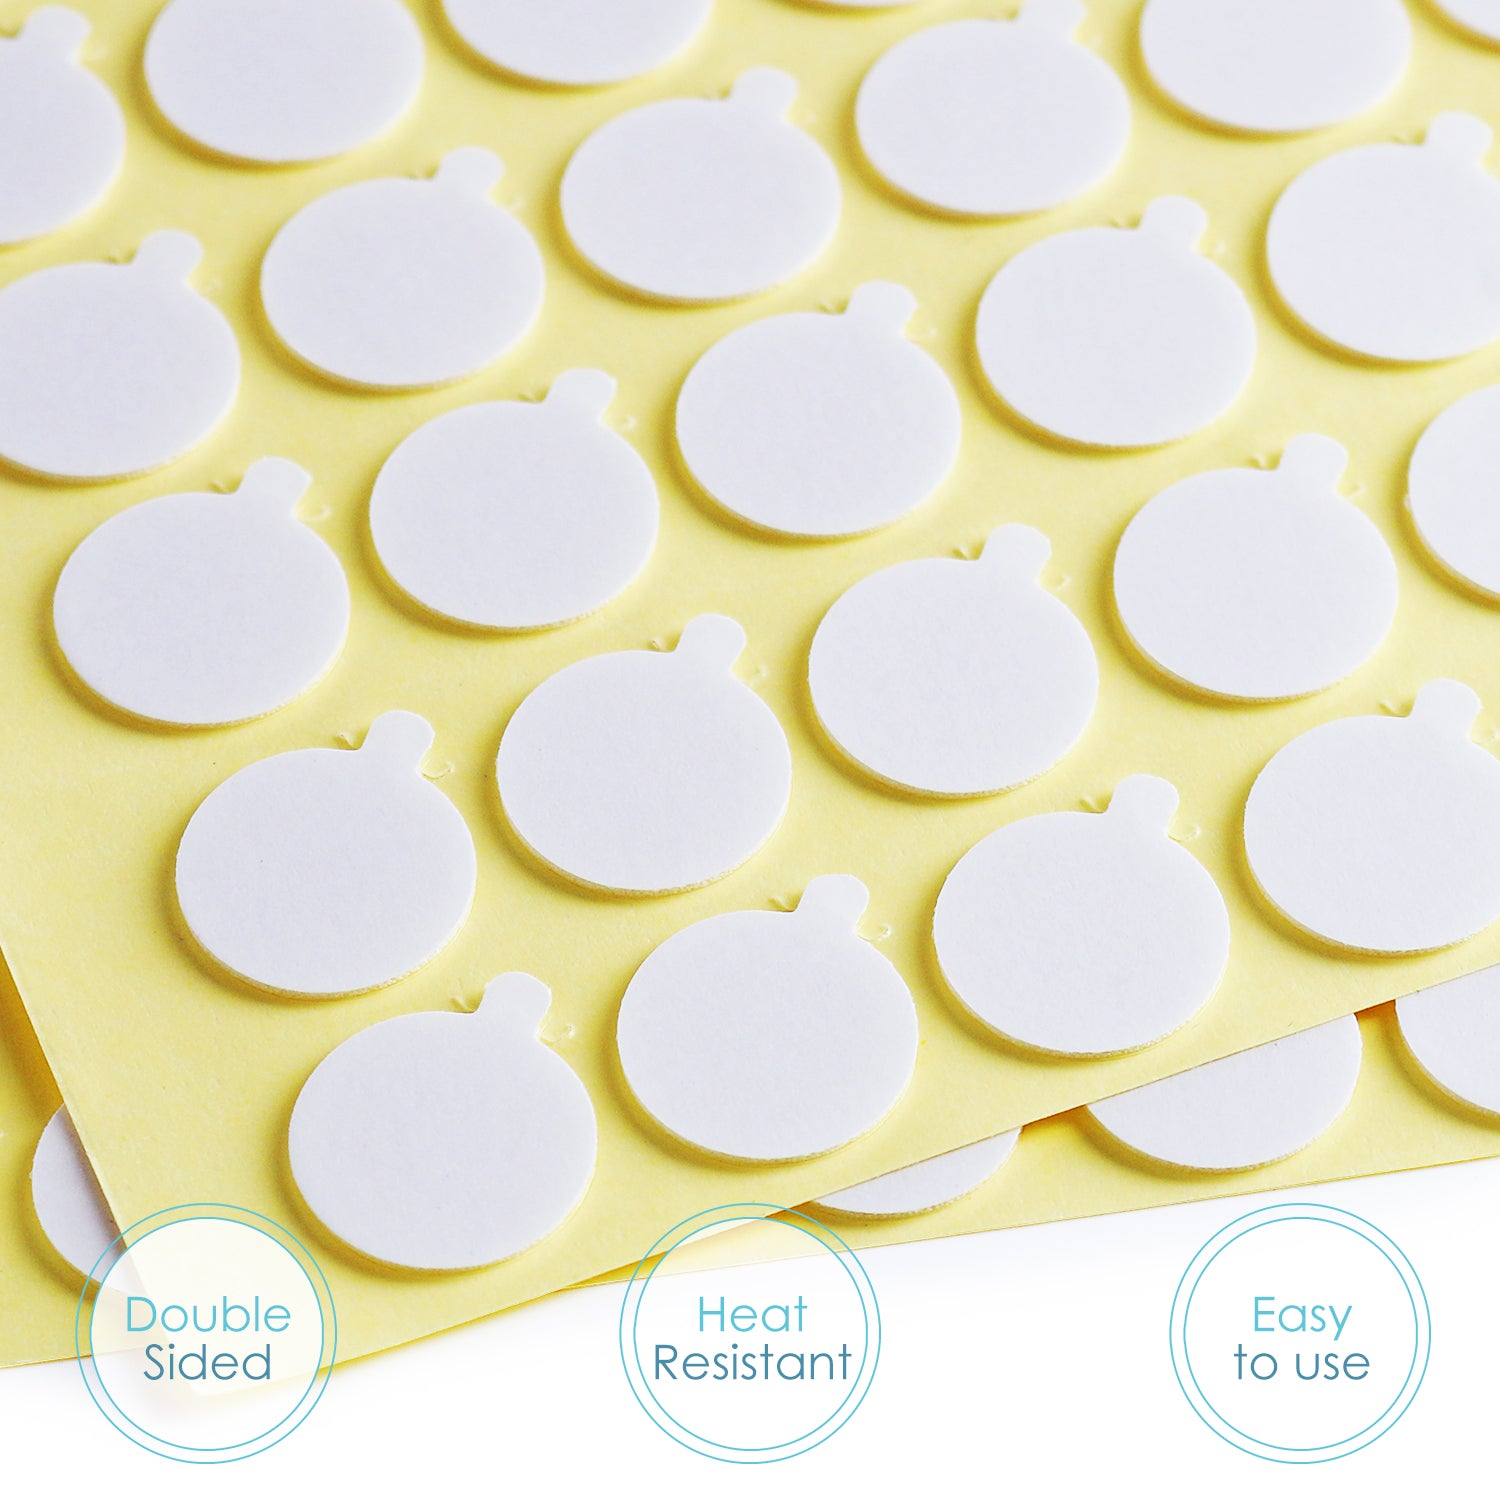 Hot Wax Wick Stickers for Candle Making Heat Resistance Double Sided Stickers 240PCS Candle Wick Stickers